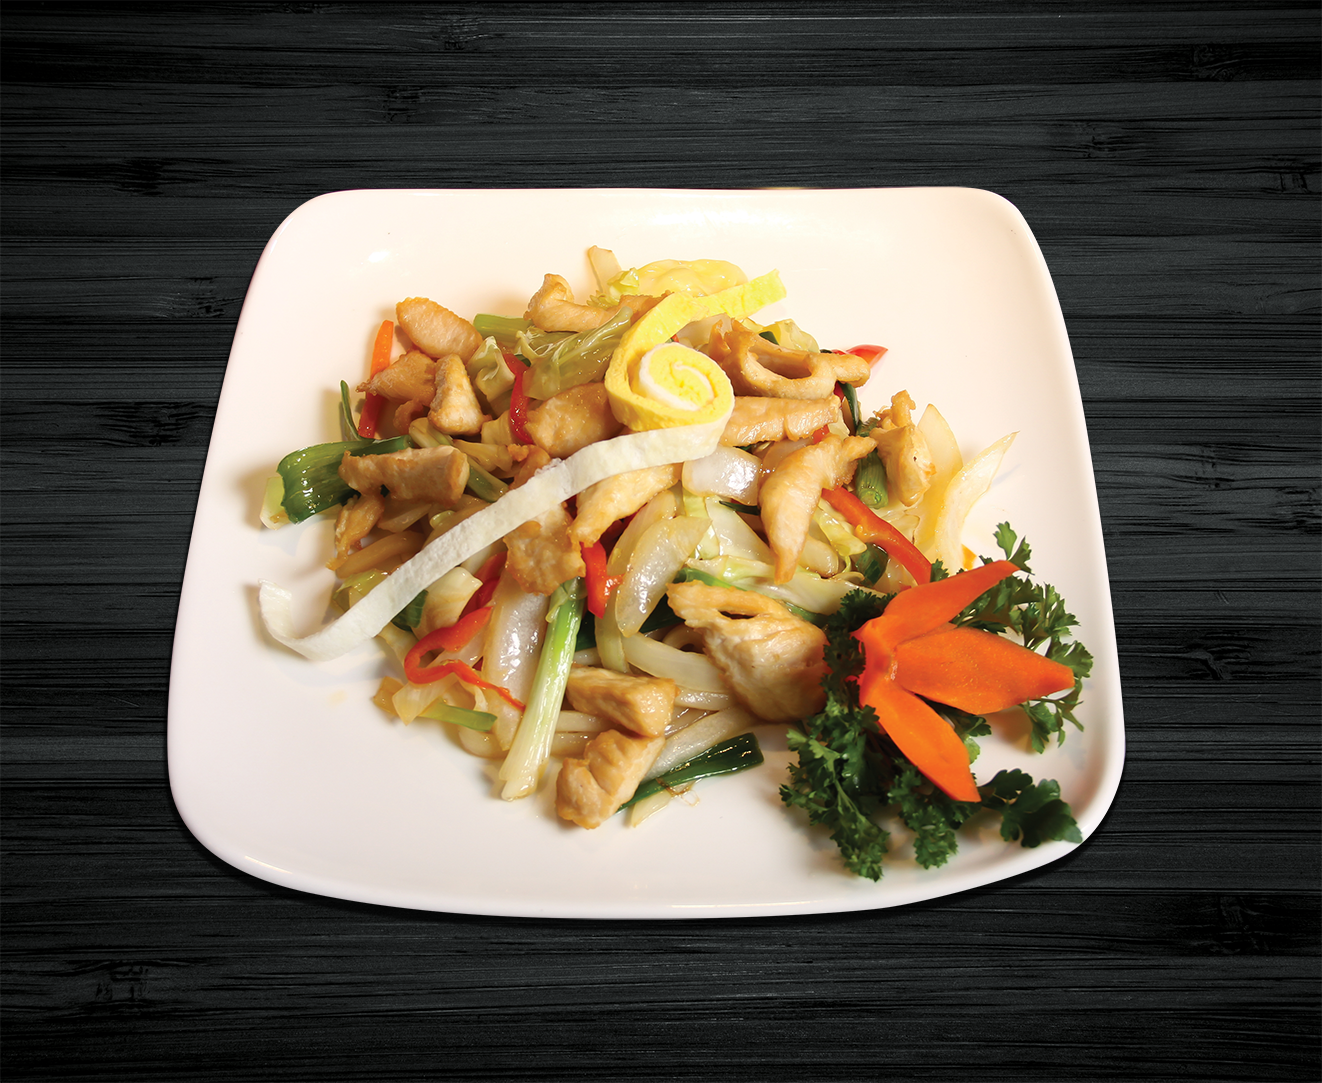 Stir-fried Udon with Chicken Breast